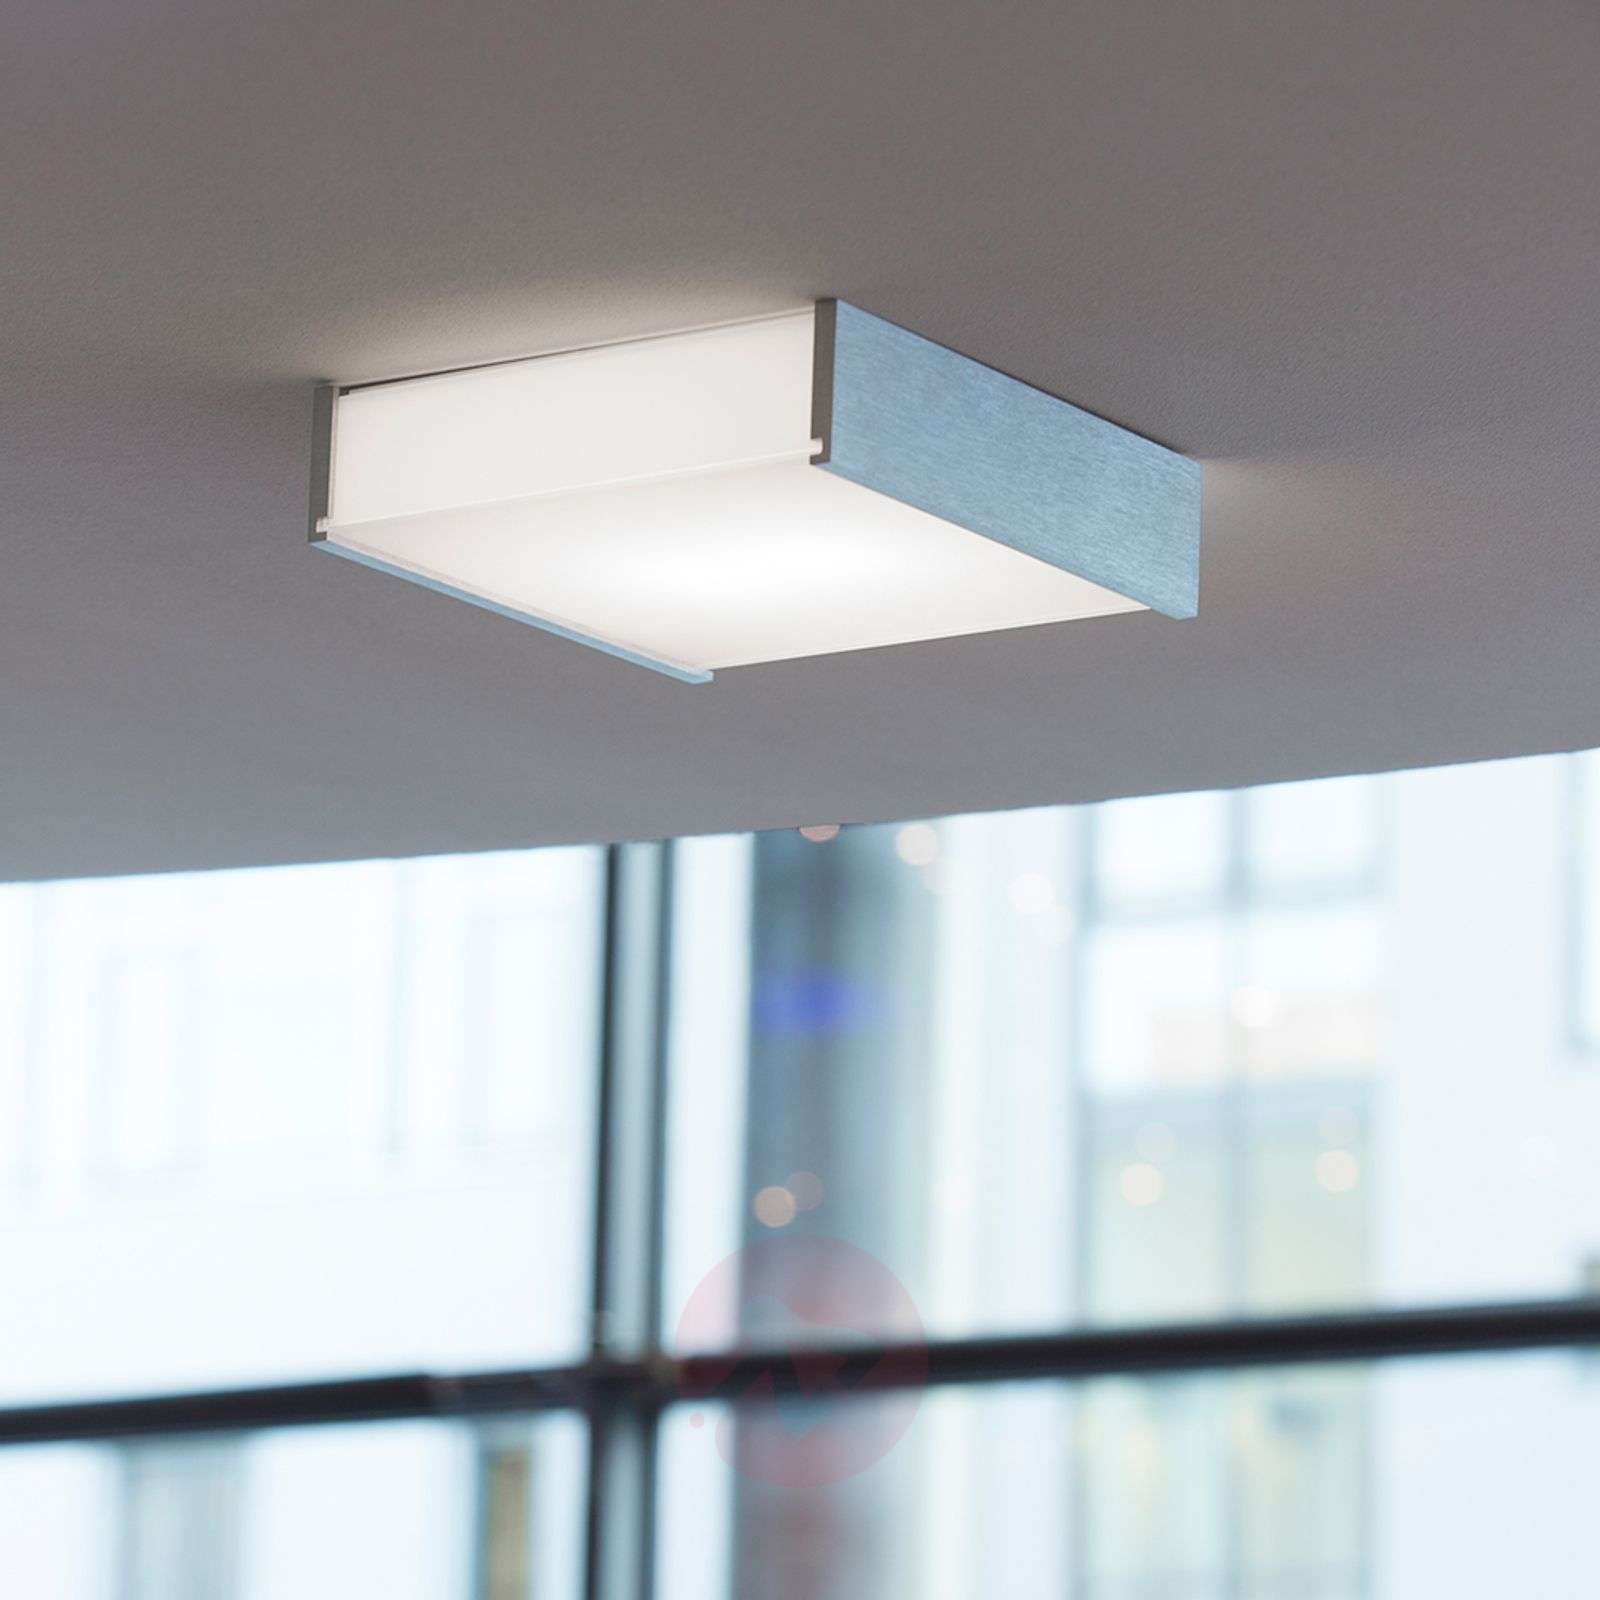 Moderna plafoniera LED Box 20 cm-2000347-04